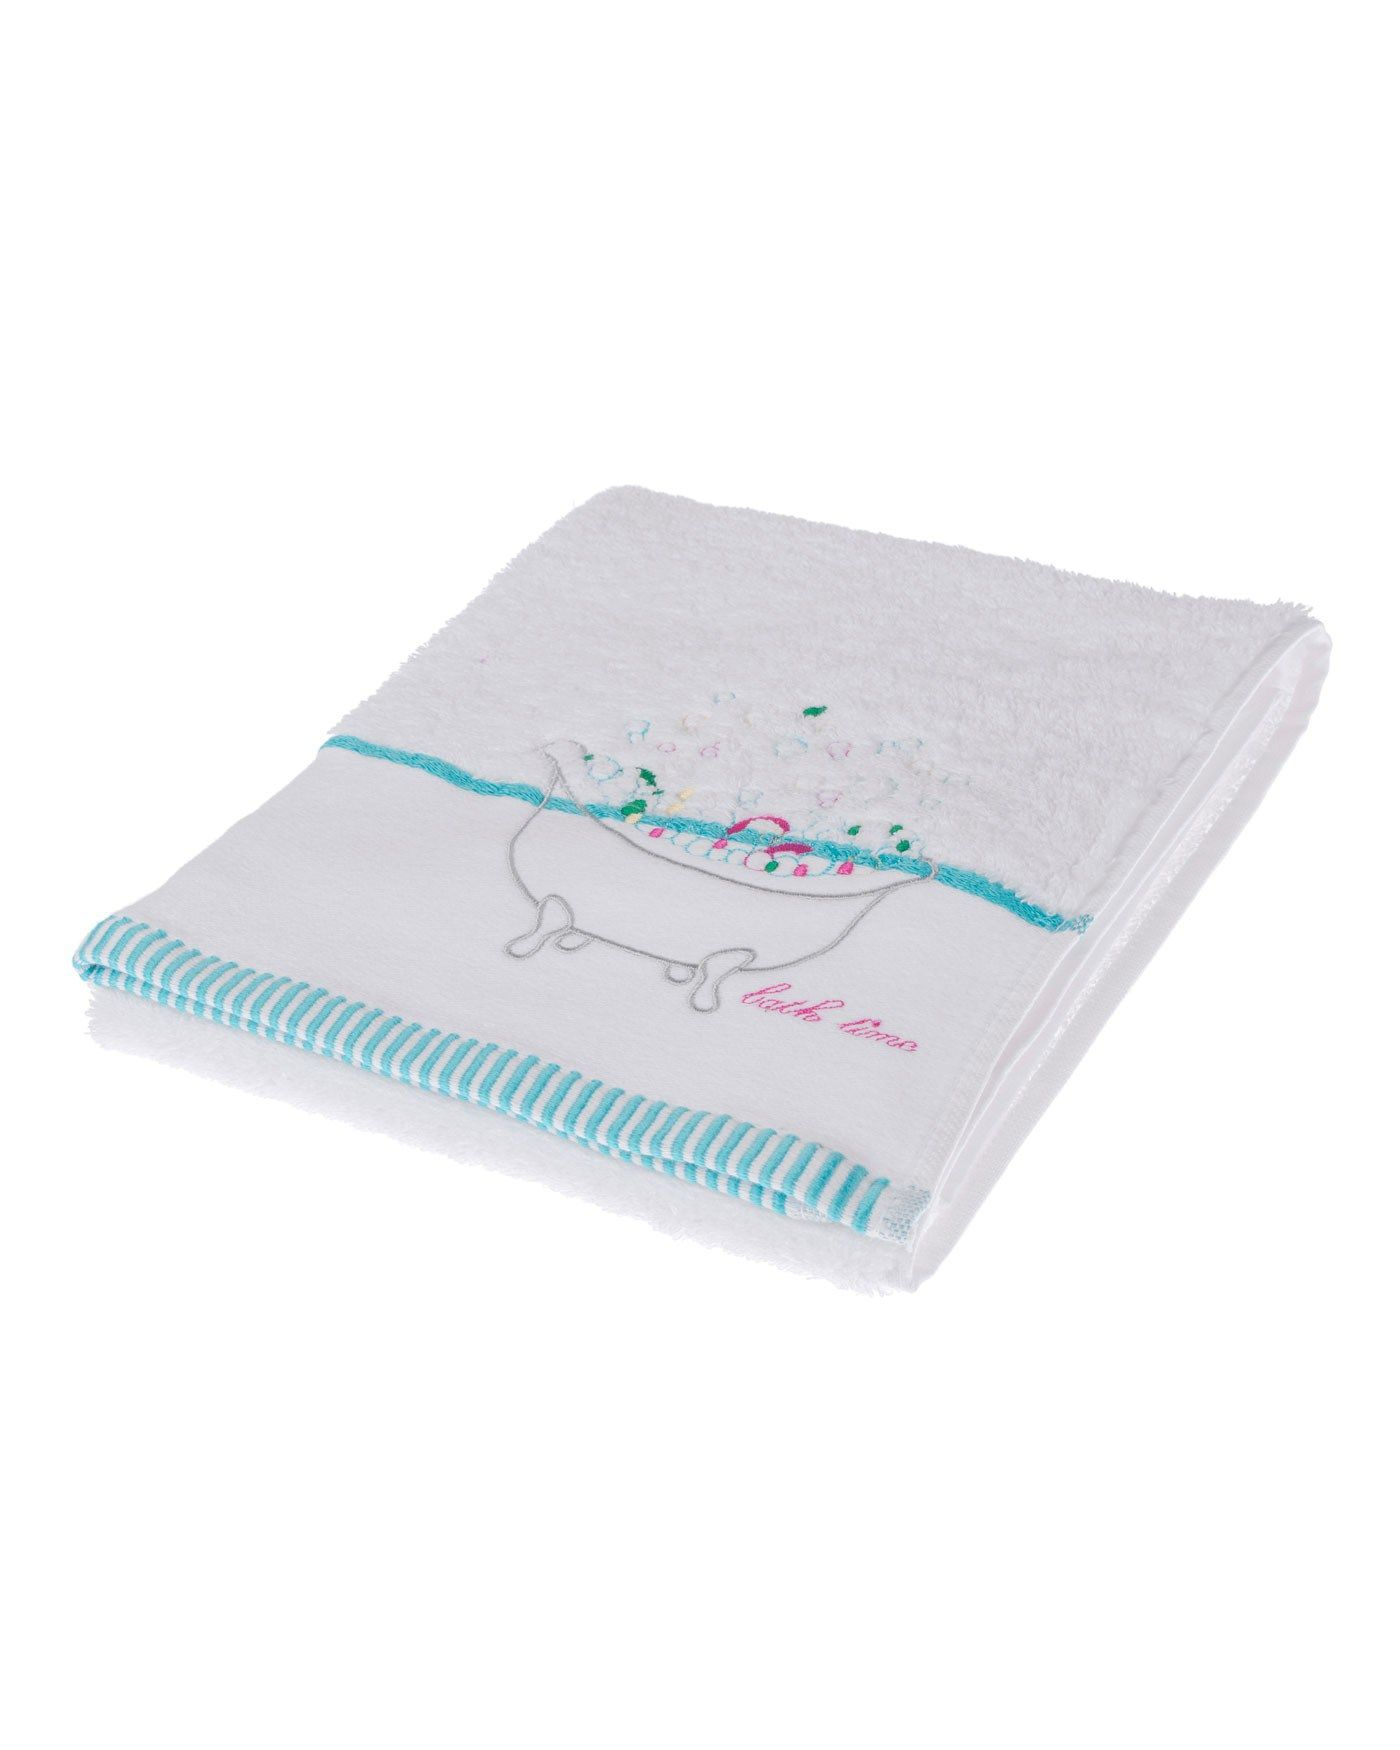 homescapes hand towel from the bath time collection measuring 50